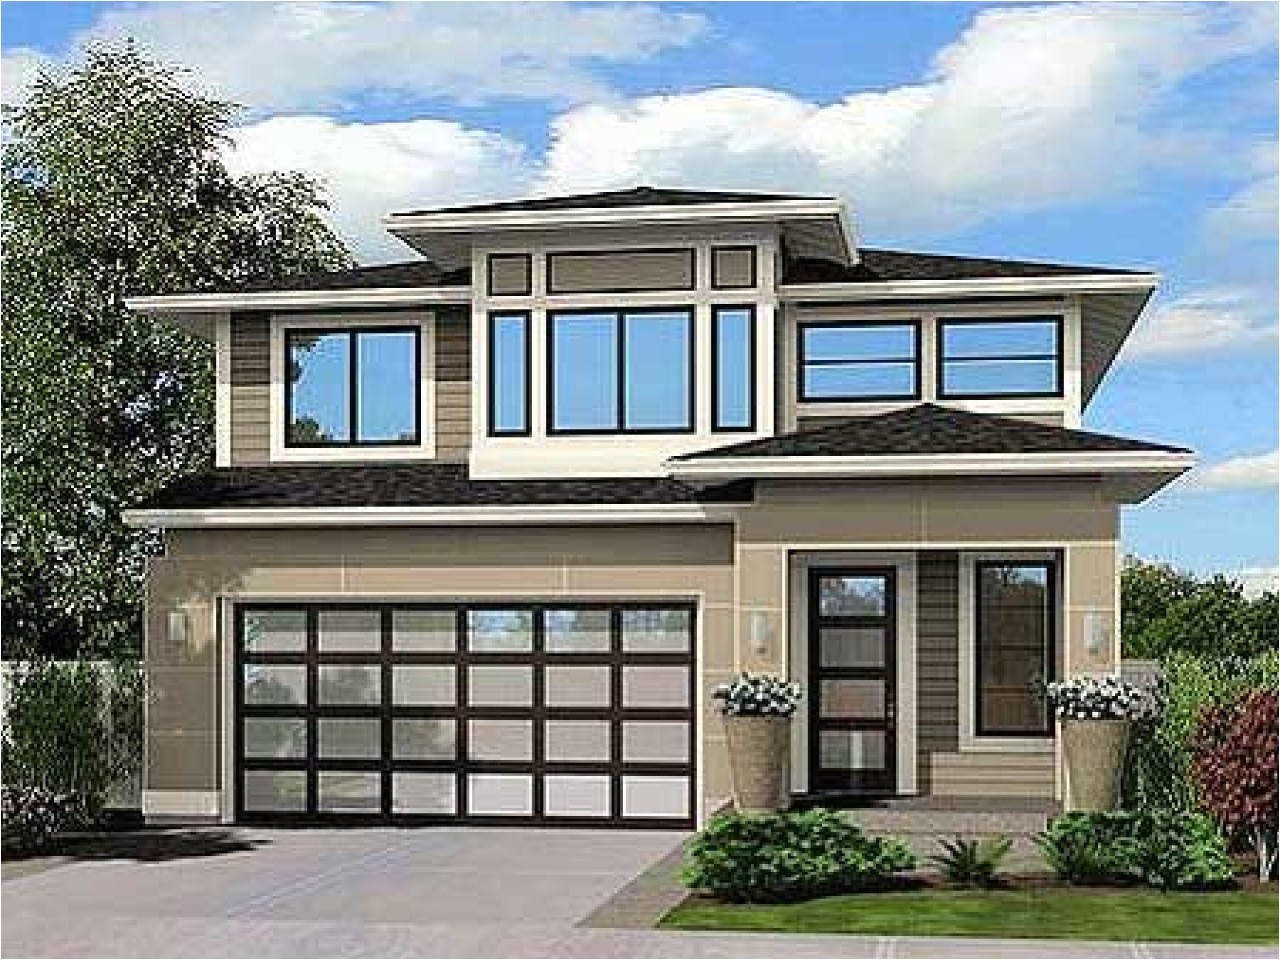 Modern Home Plans for Small Lots Modern Narrow Lot House ... on modern southwest house plans, modern sloped lot house plans, zero lot line patio home plans, small narrow lot duplex plans, 3-story narrow house plans, inexpensive two-story house plans, narrow coastal house plans, ultra narrow lot plans, one story courtyard house plans, modern tudor house plans, modern elevator house plans, modern hillside home plans, modern concrete house plans, narrow waterfront home plans, modern house design in philippines, small house plans, modern two-story house plans, modern affordable home plans, modern house plans with lots of windows, craftsman narrow house plans,